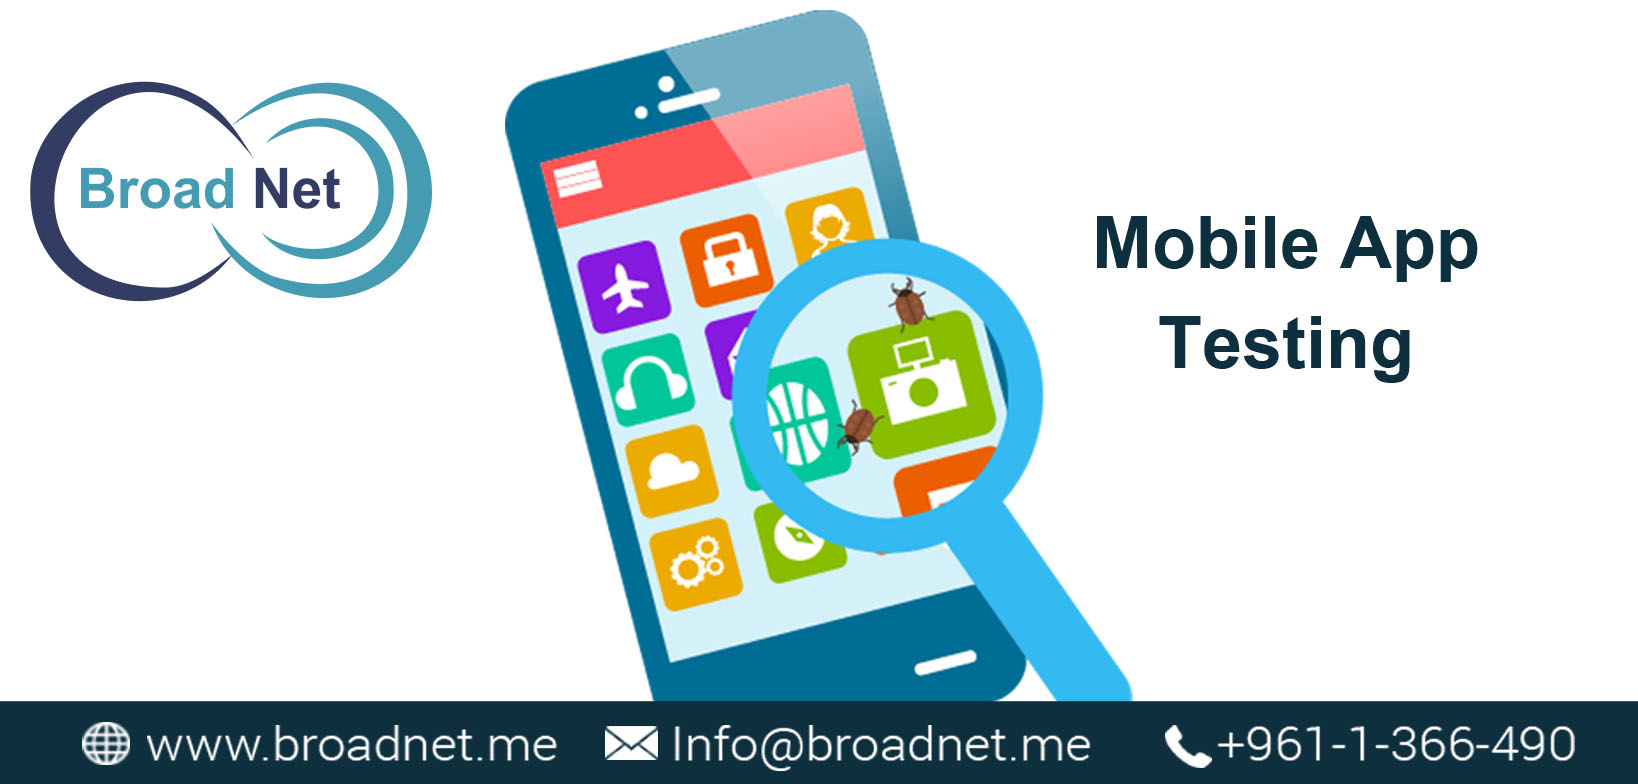 BroadNet Technologies is at the cutting-edge of Mobile App Testing